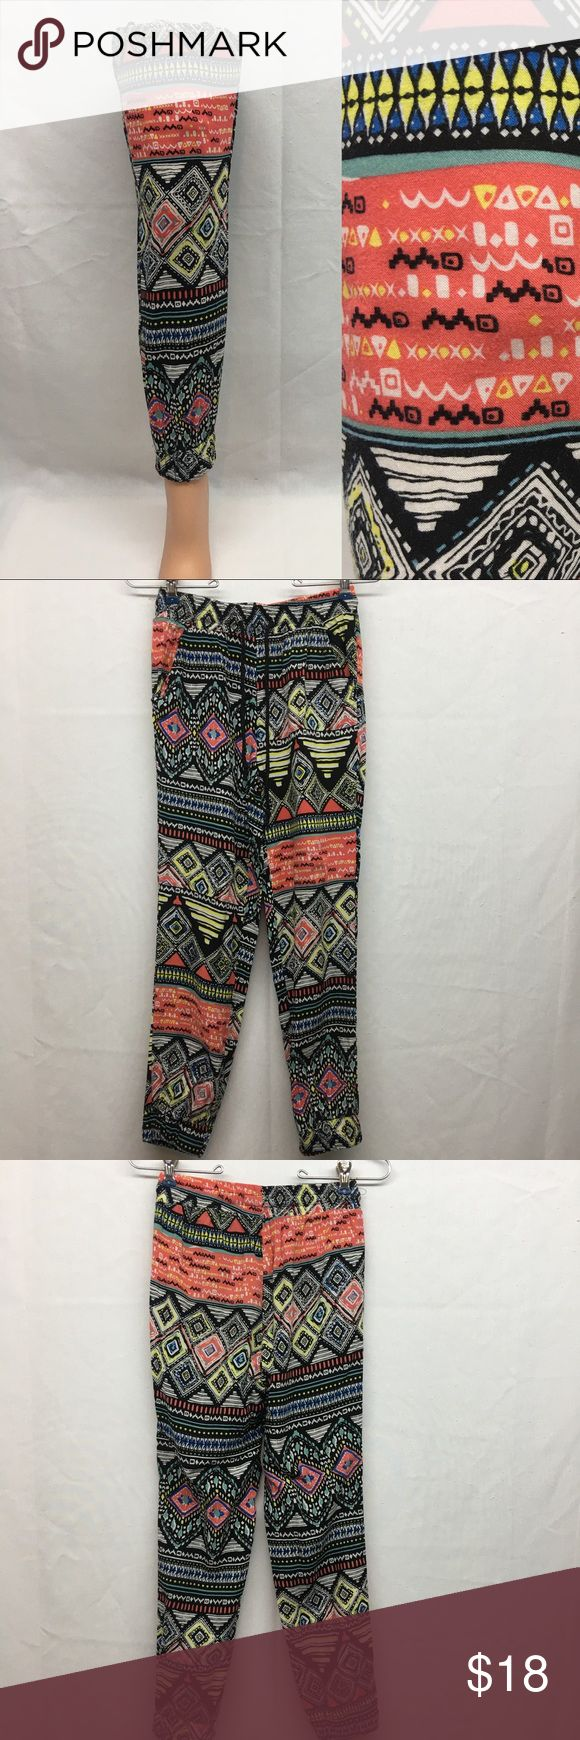 "New Look Aztec Print Pants New Look aztec print pants. Washed but never worn. No flaws. Size S. Elastic waistband with elastic cuffs at the bottom. Waist laying flat 12"". Rise 11"". Inseam 25"". New Look Pants"